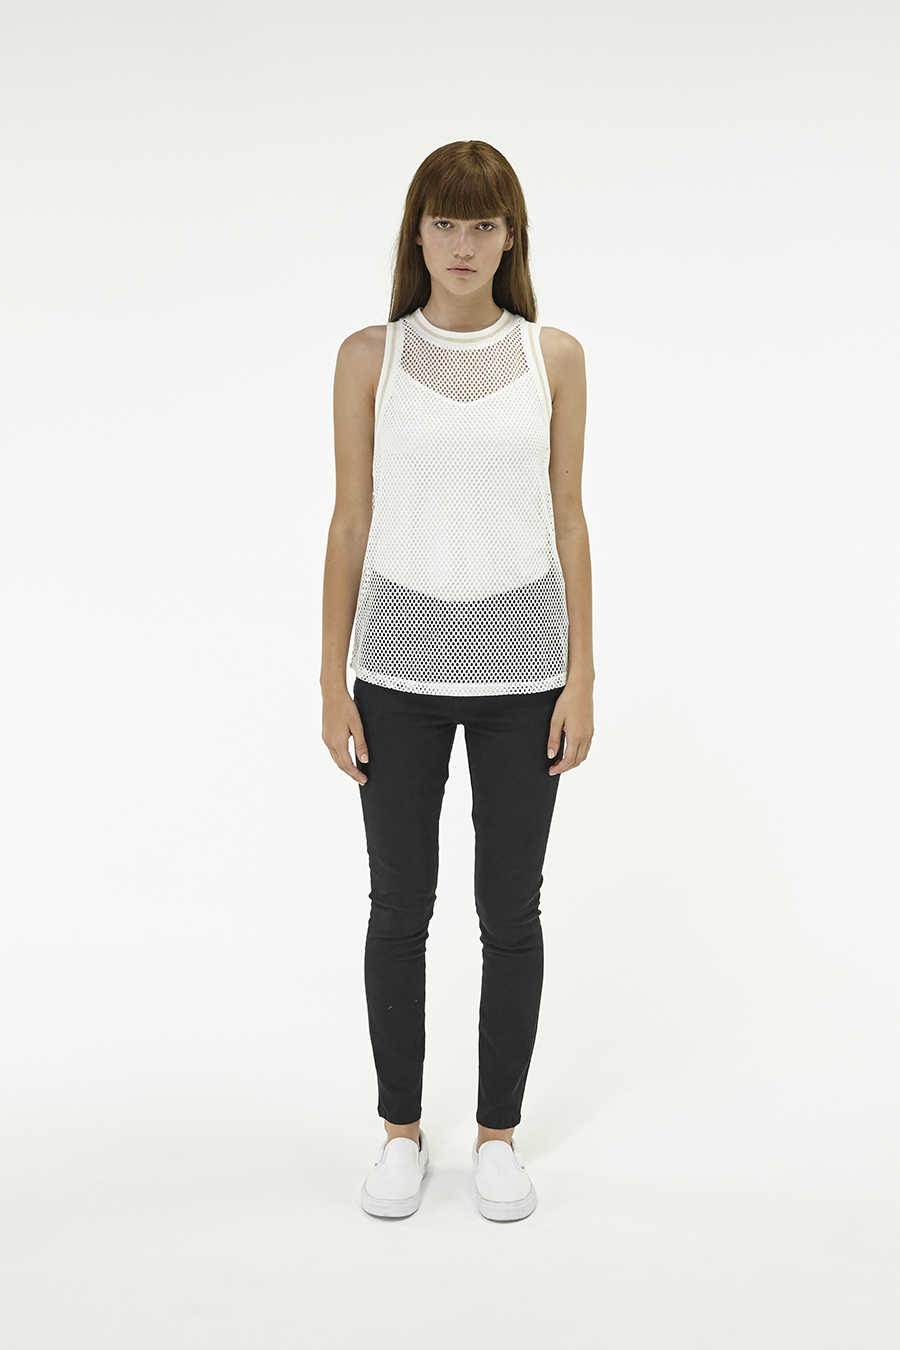 Huffer_Q3-16_W-Two-Love-Mesh-Tank_White-01